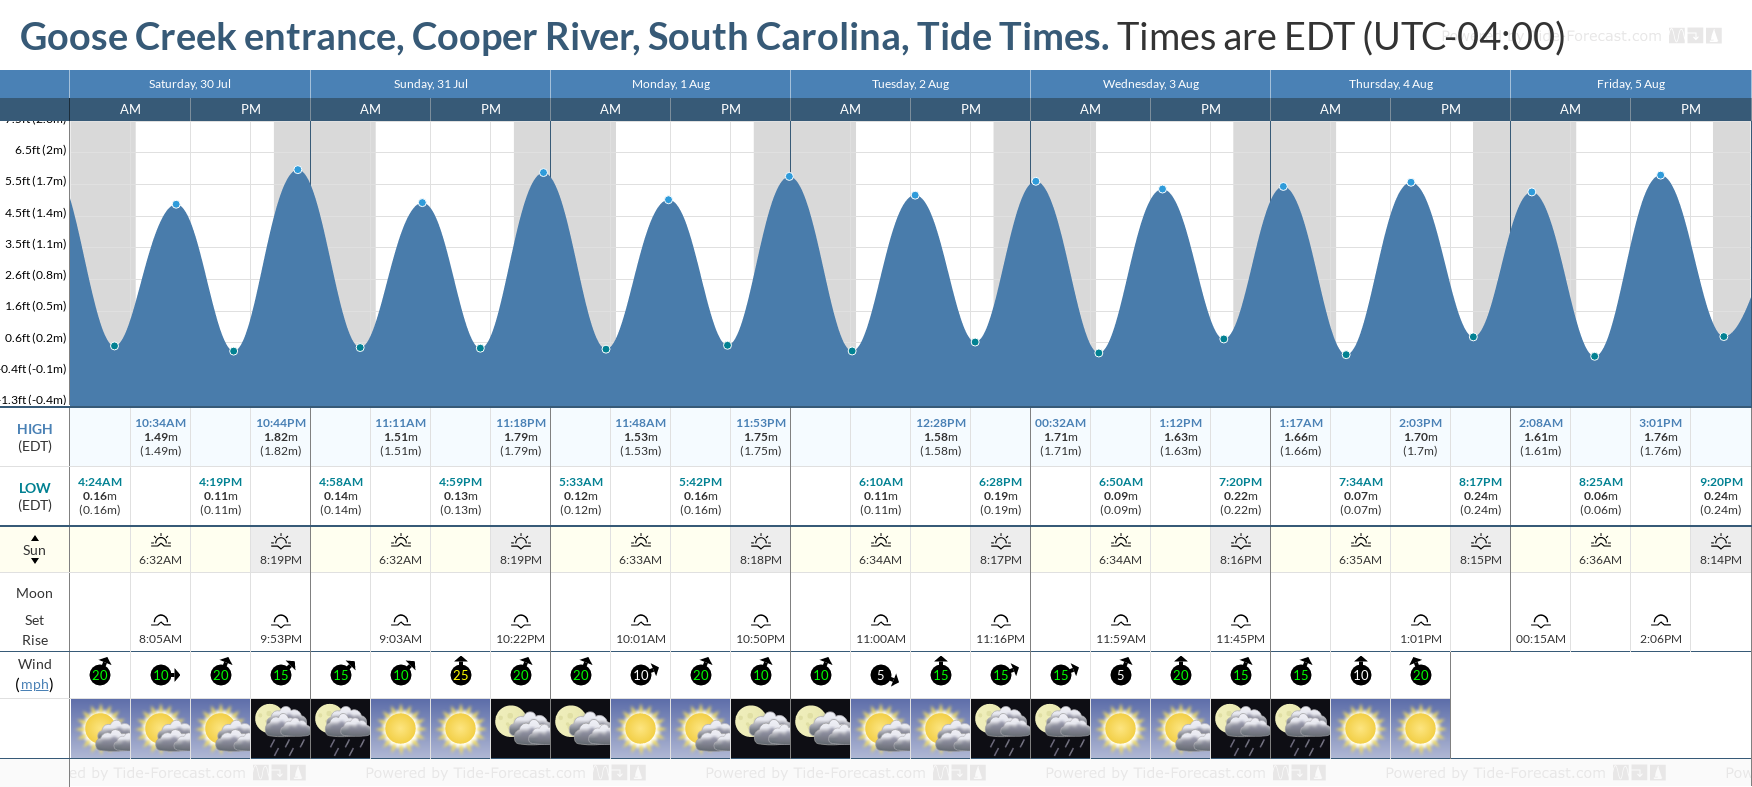 Goose Creek entrance, Cooper River, South Carolina Tide Chart including high and low tide tide times for the next 7 days